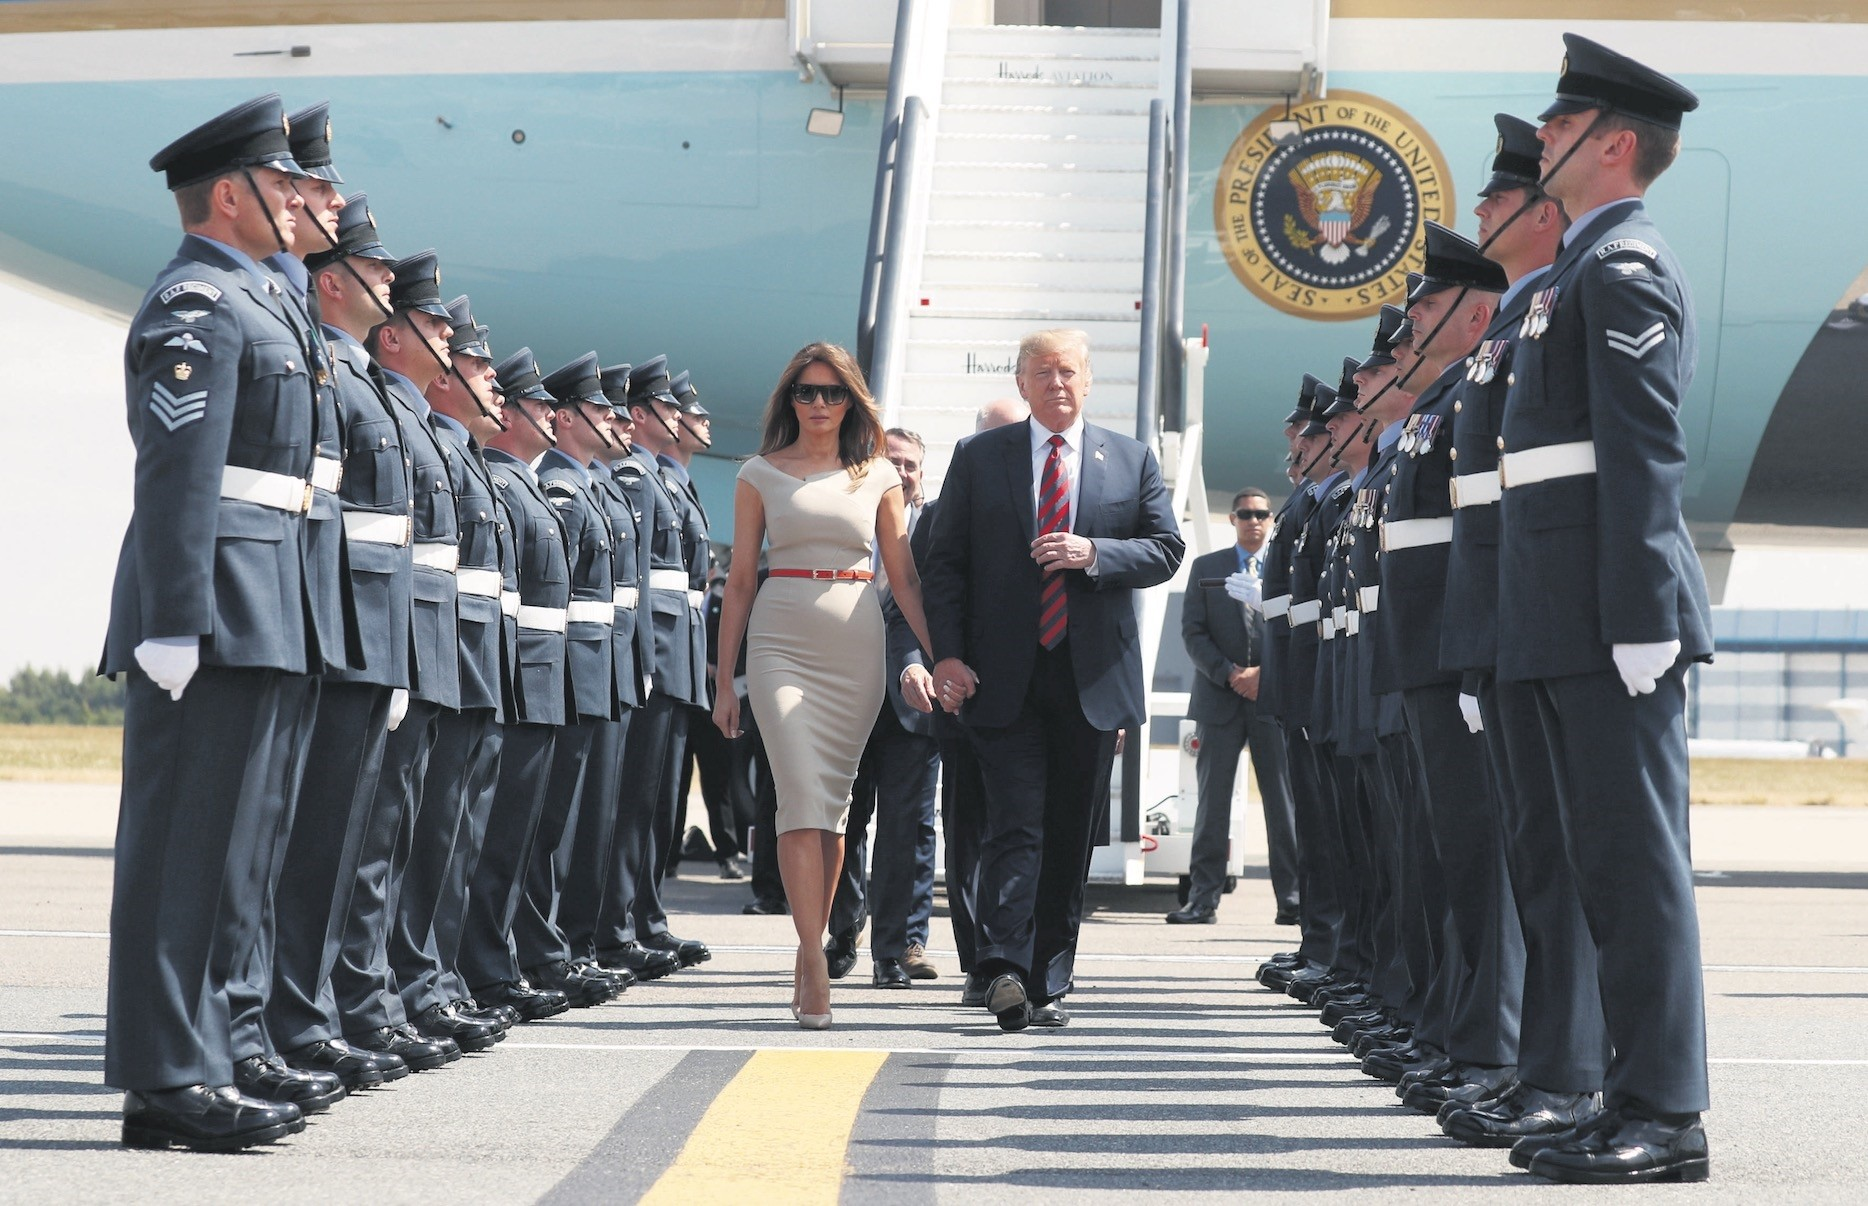 U.S. President Donald Trump and first lady Melania Trump arrive at Stansted Airport, Britain, July 12.